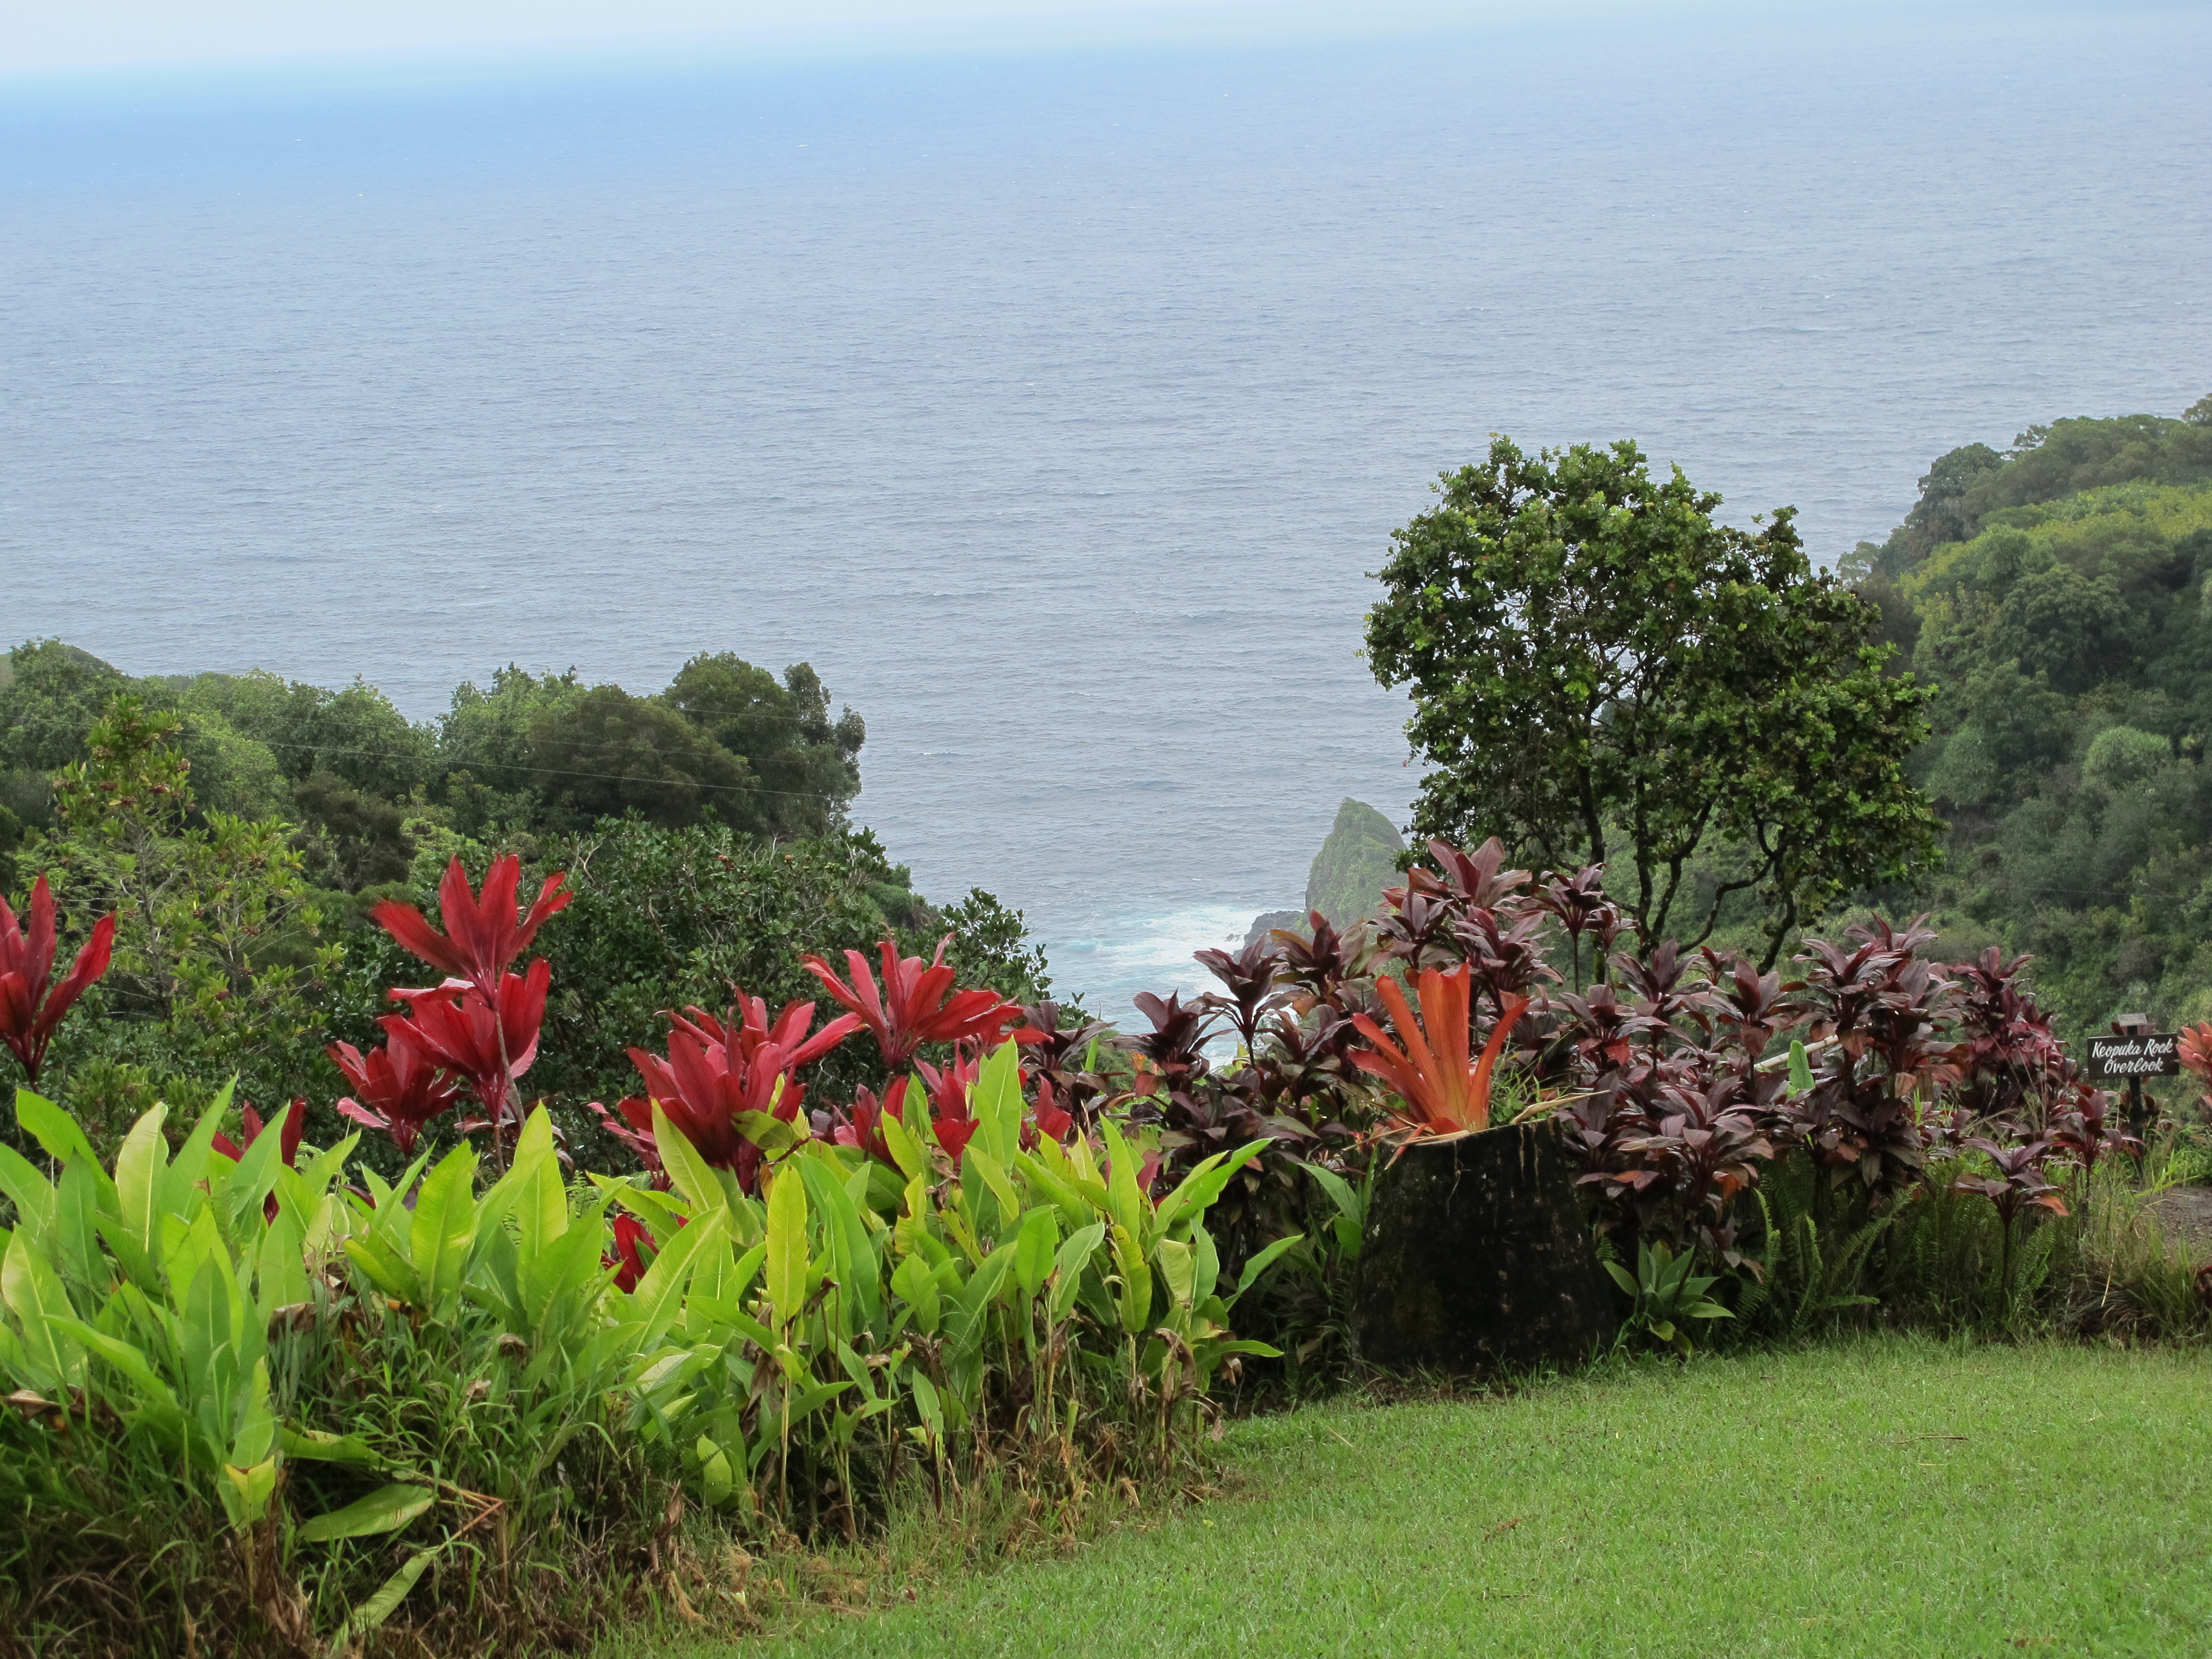 The Garden of Eden is a fabulous arboretum and nature spot on the road to Hana.